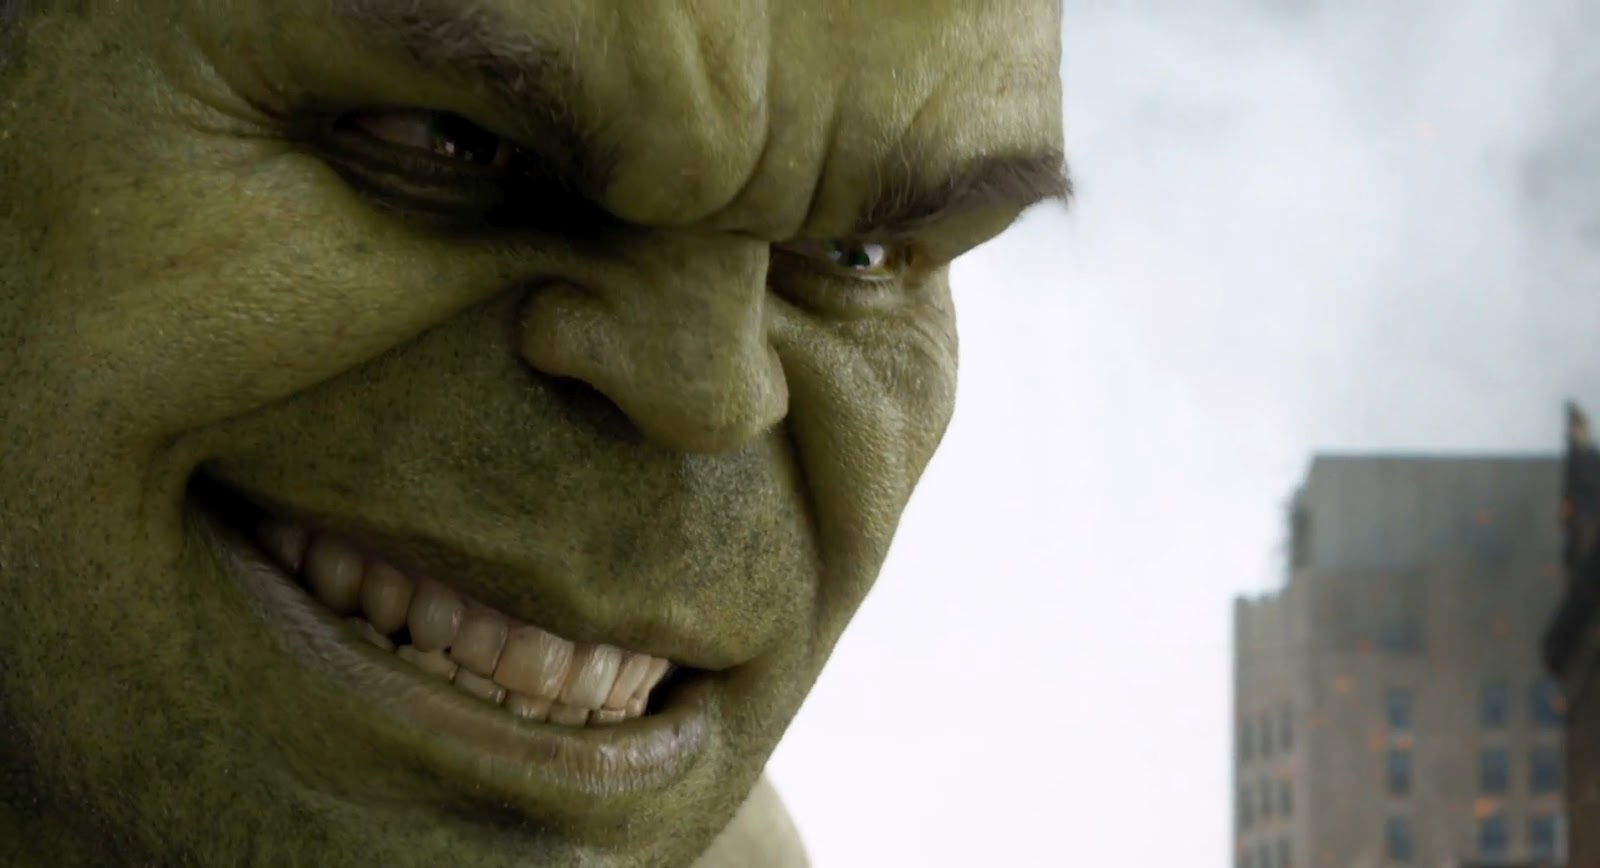 Mark Ruffalo's Hulk will appear in Thor: Ragnarok